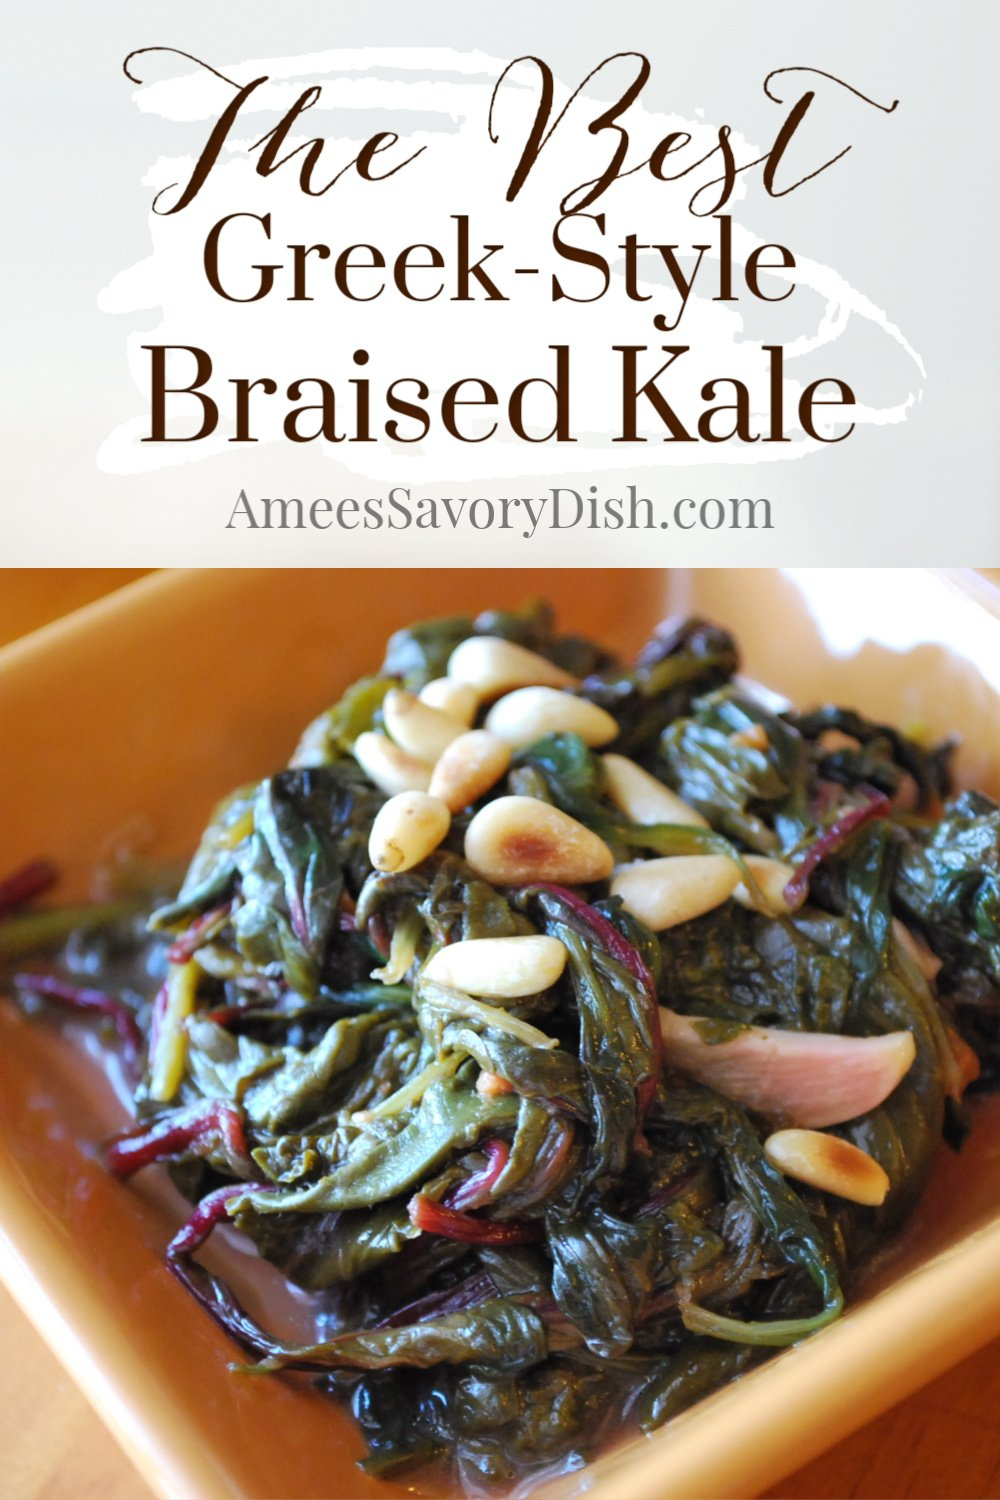 A nutritious recipe for Greek-style braised kale made with fresh lemon juice, pine nuts, chicken broth, and garlic. This Mediterranean kale side dish is easy and delicious! #kalerecipe #mediterraneansidedish #greekfood via @Ameessavorydish